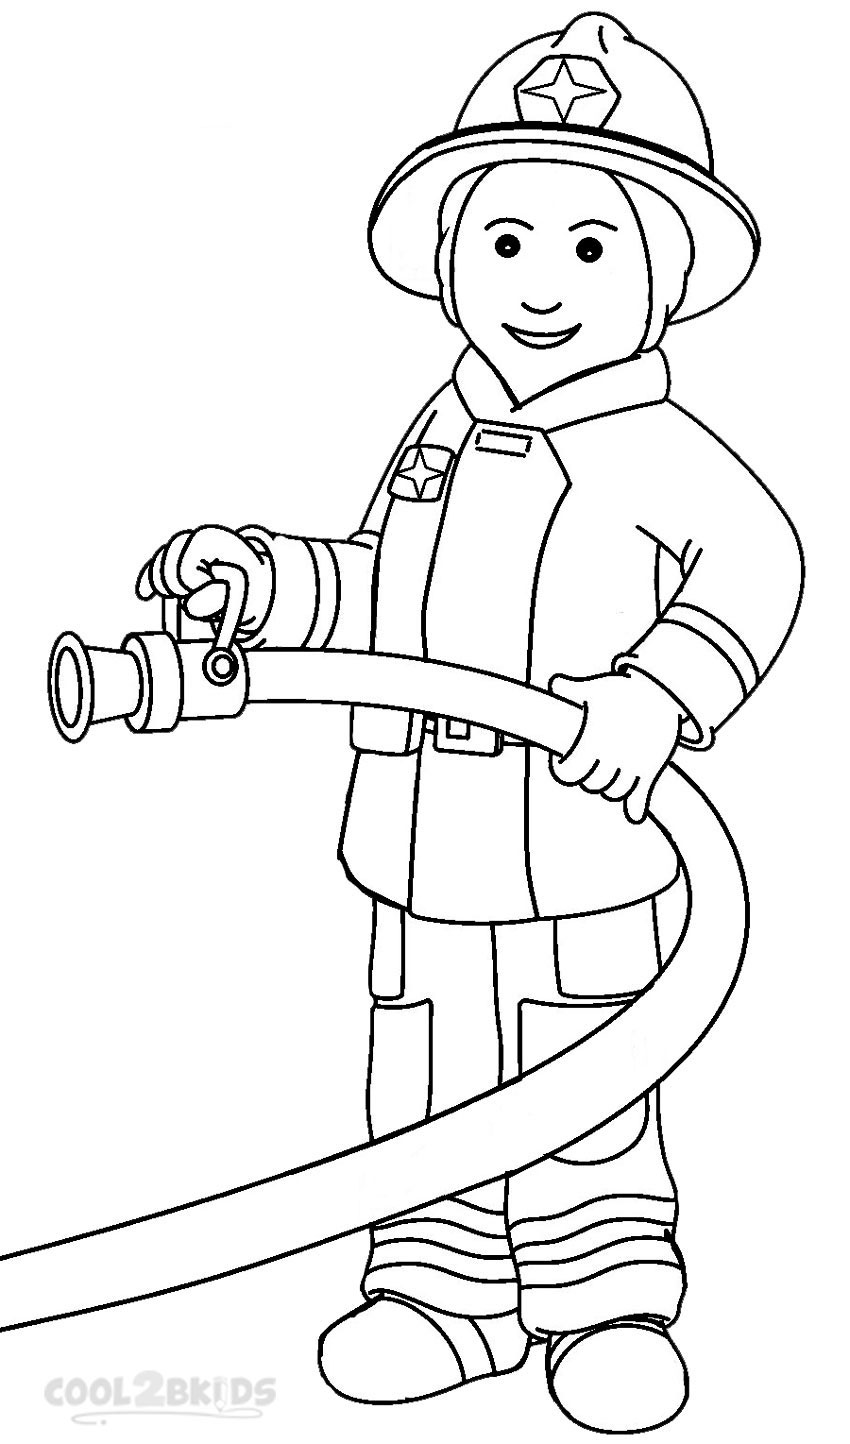 printable coloring pages fireman-#4